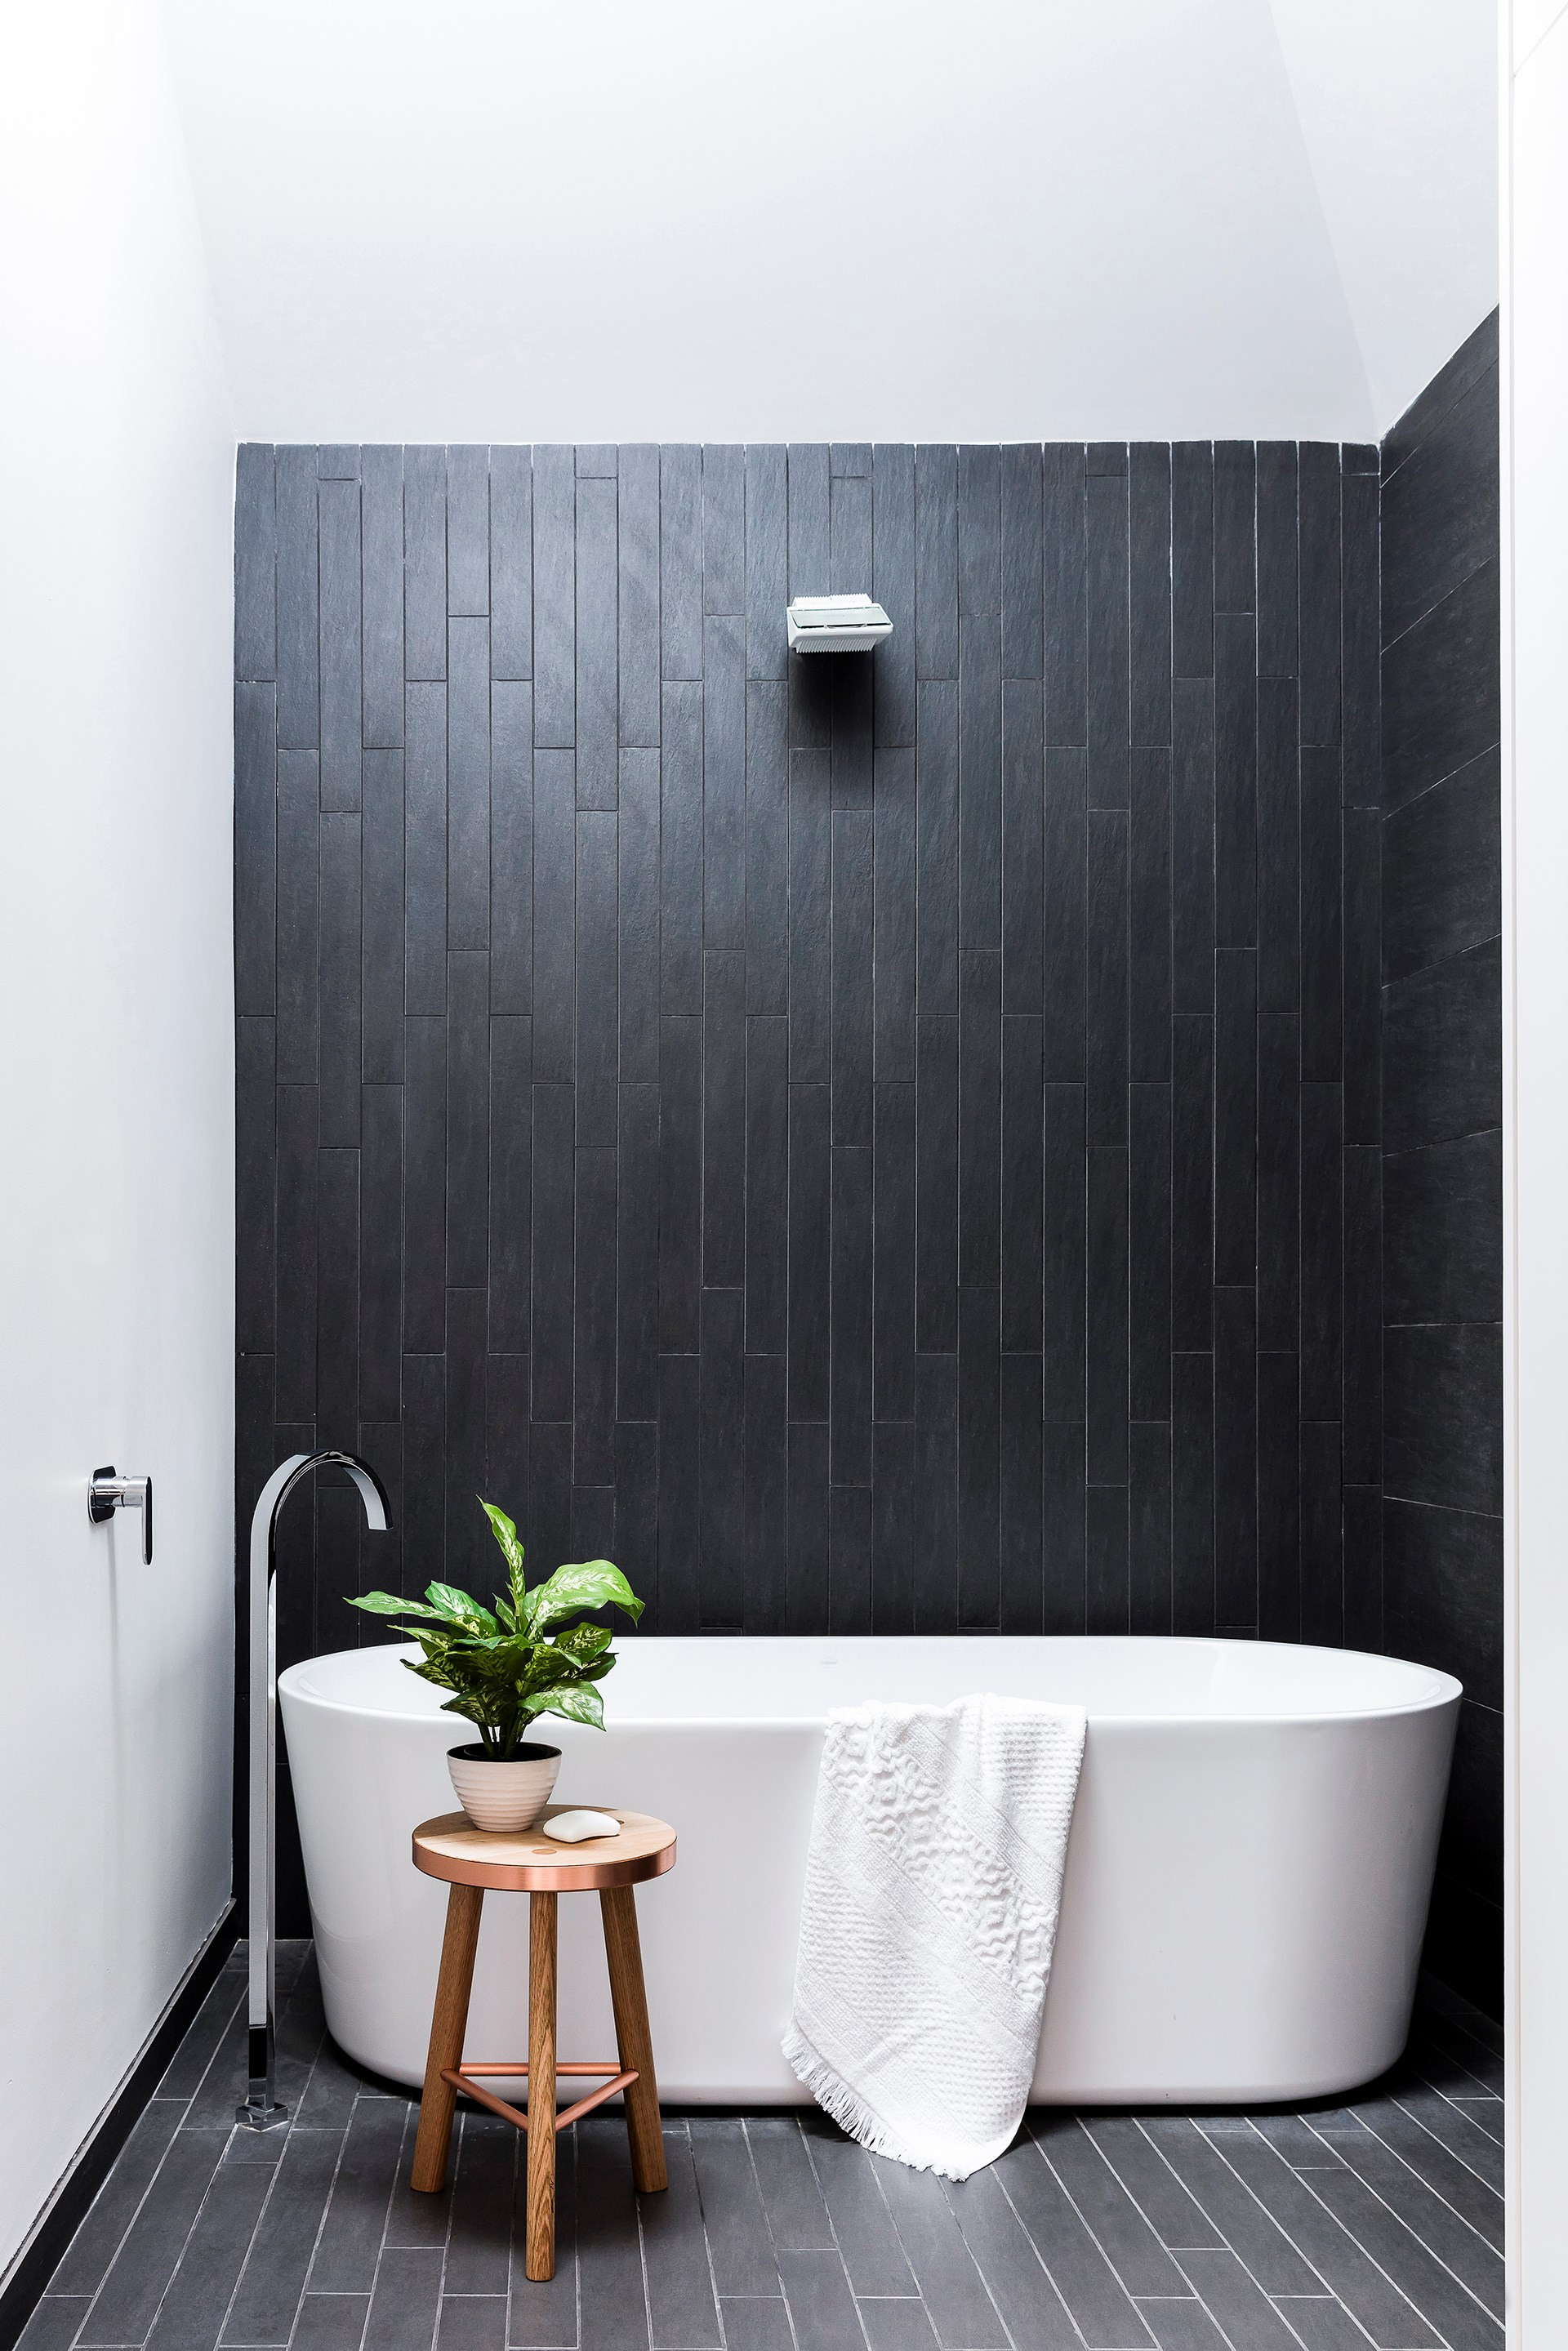 Sleek and contemporary, the monochrome palette and simplistic design of this bathroom ties in perfectly with the minimalist renovation of this [1940s bungalow in Sydney](http://www.homestolove.com.au/1940s-facade-hides-a-sizzling-21st-century-home-3269). *Photo: Maree Homer / Australian House & Garden*